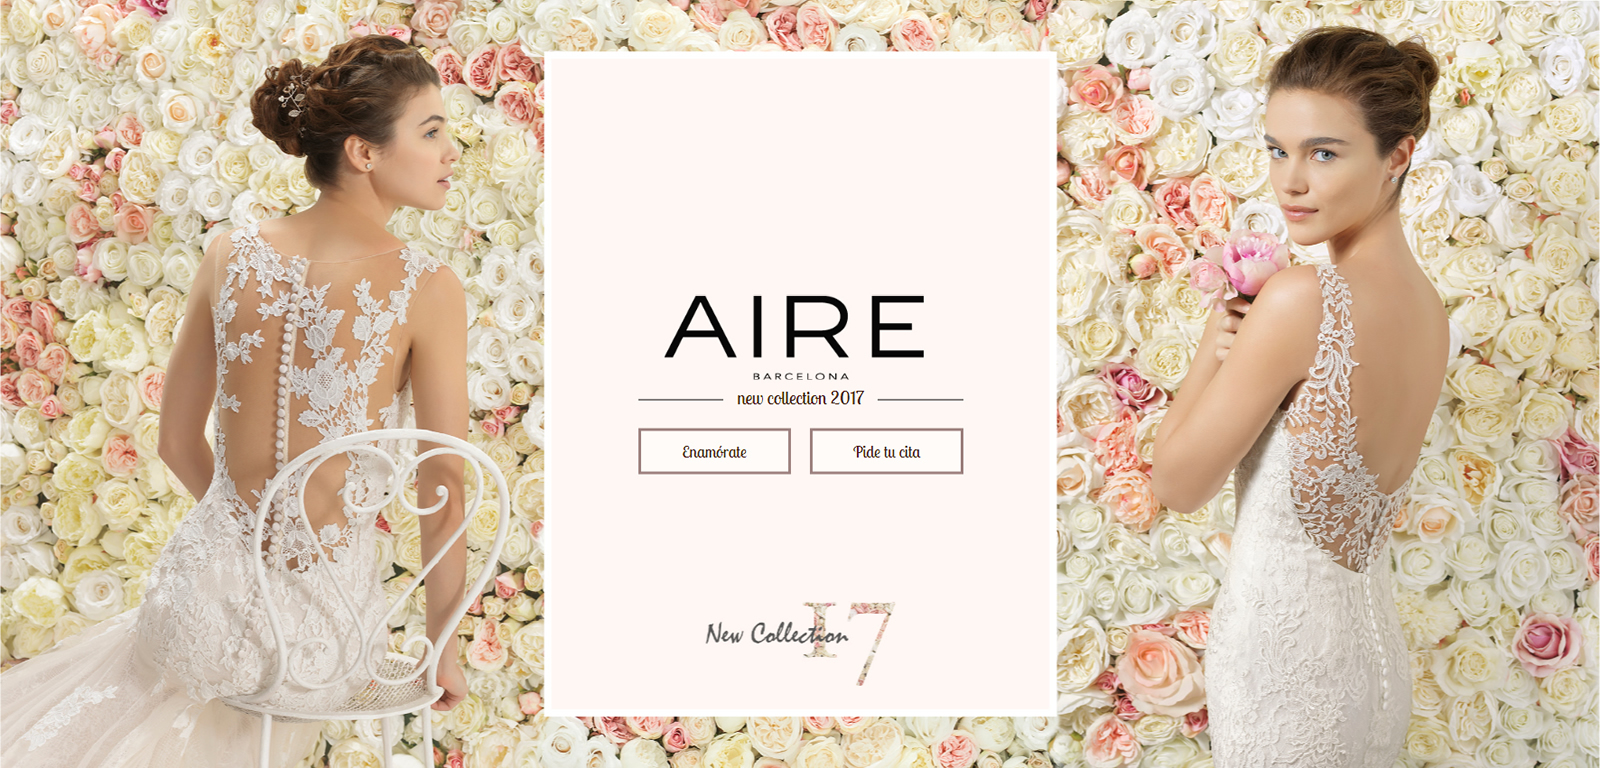 aire-2_s1